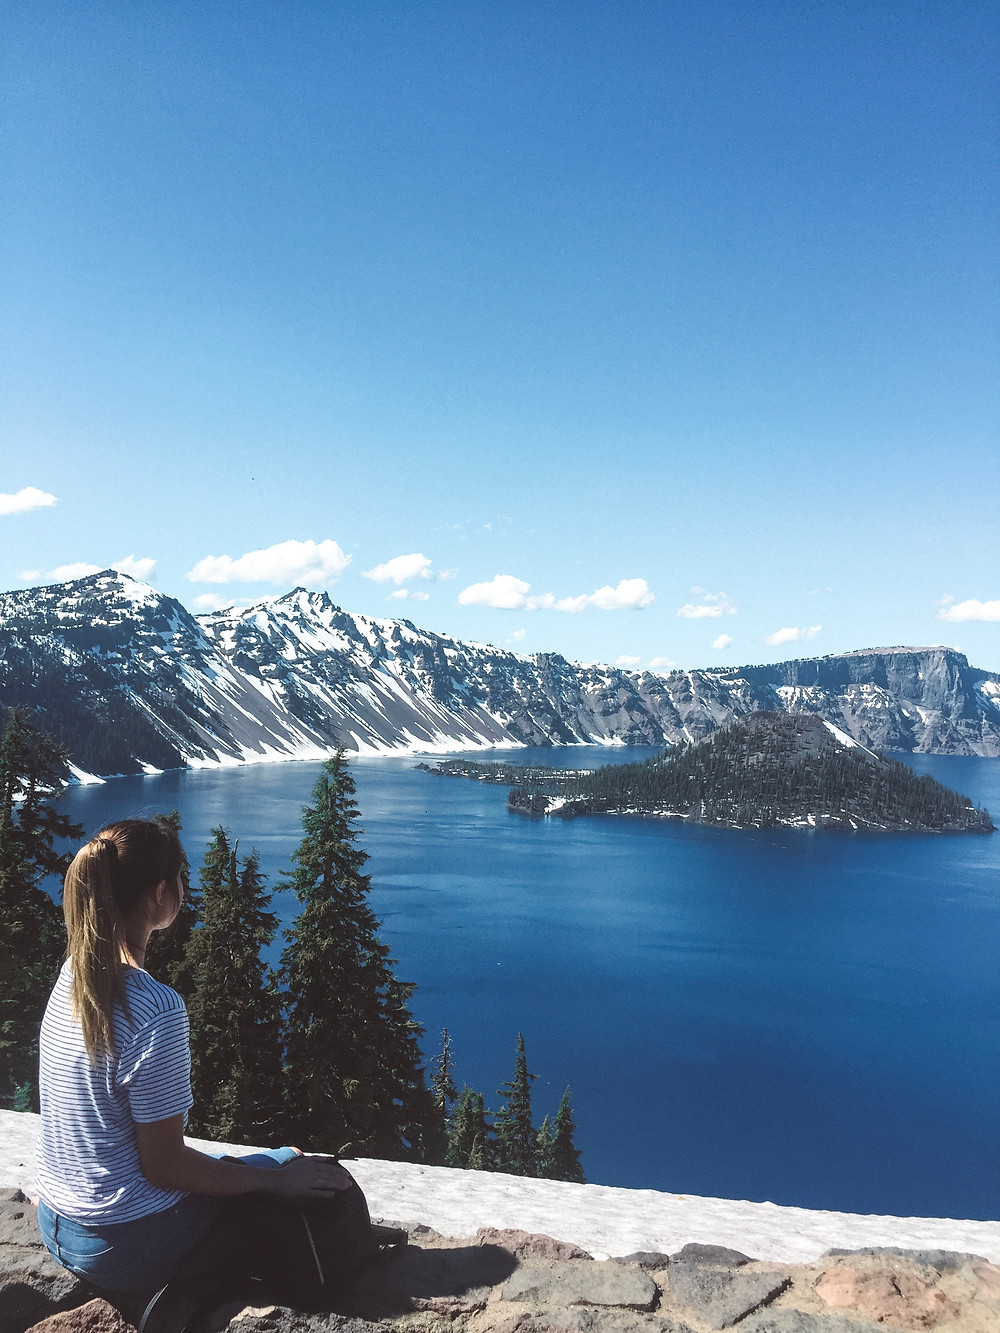 View at Crater Lake National Park